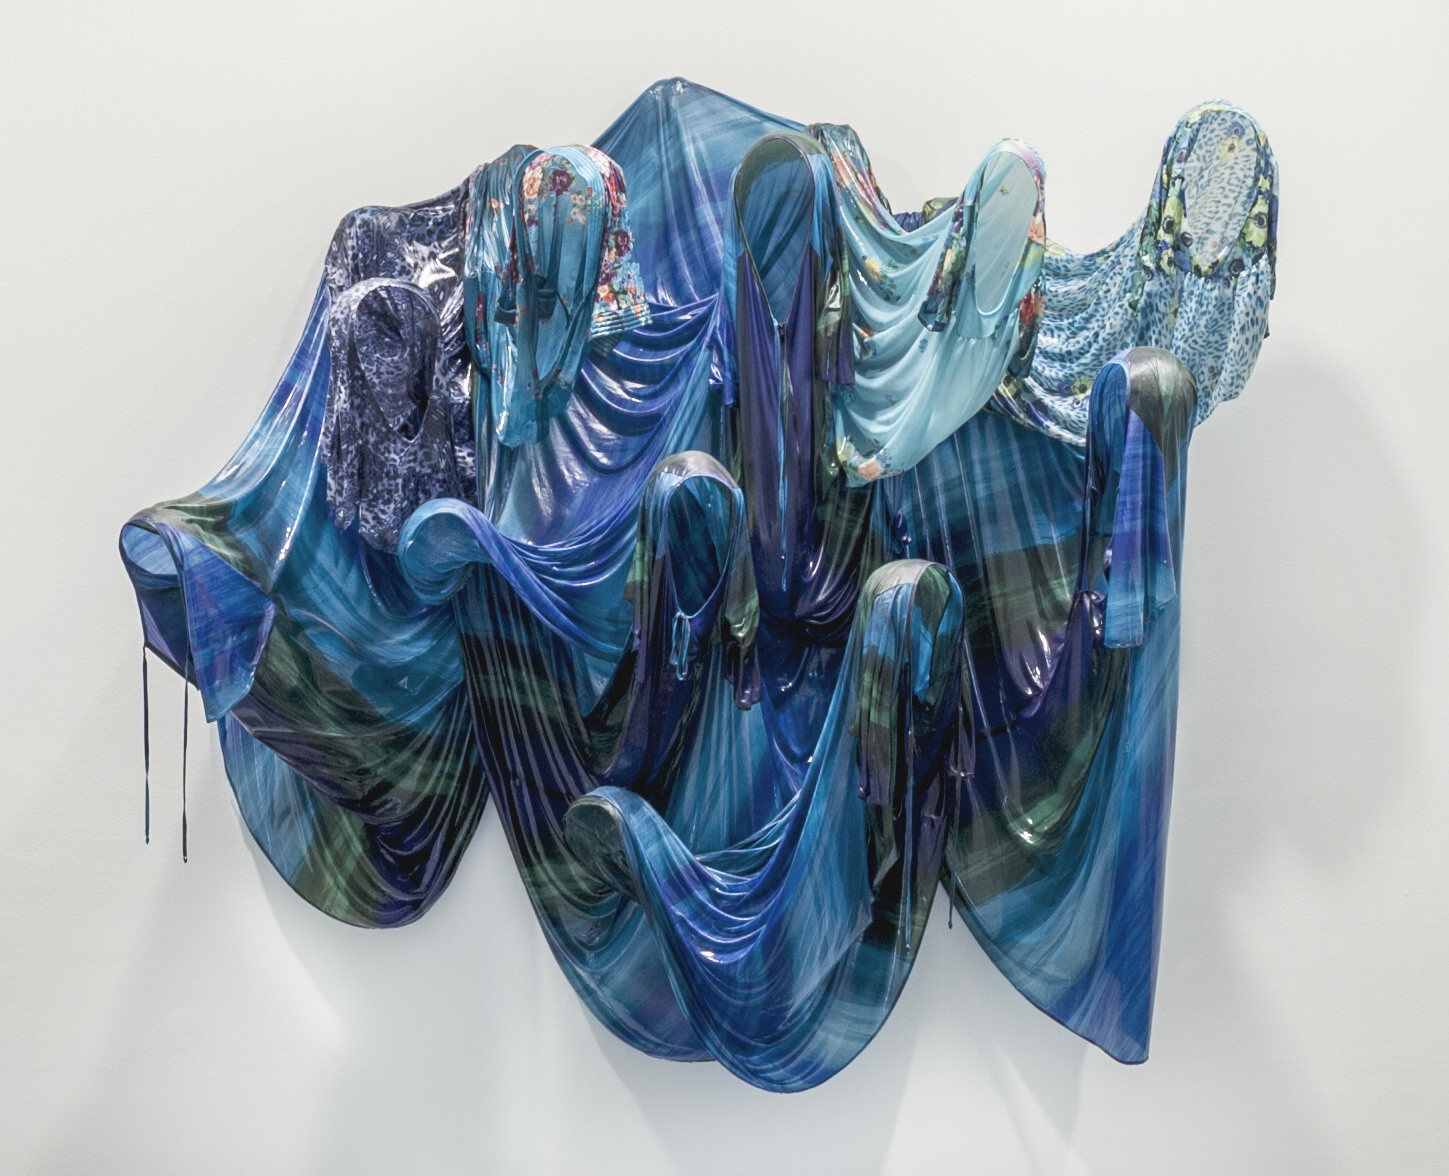 Kevin Beasley. Untitled (Sea). 2016. House dresses, resin and fiberglass, 82 × 96 × 26 1/2″ (208.3 × 243.8 × 67.3 cm). Gift of Marie-Josée and Henry R. Kravis